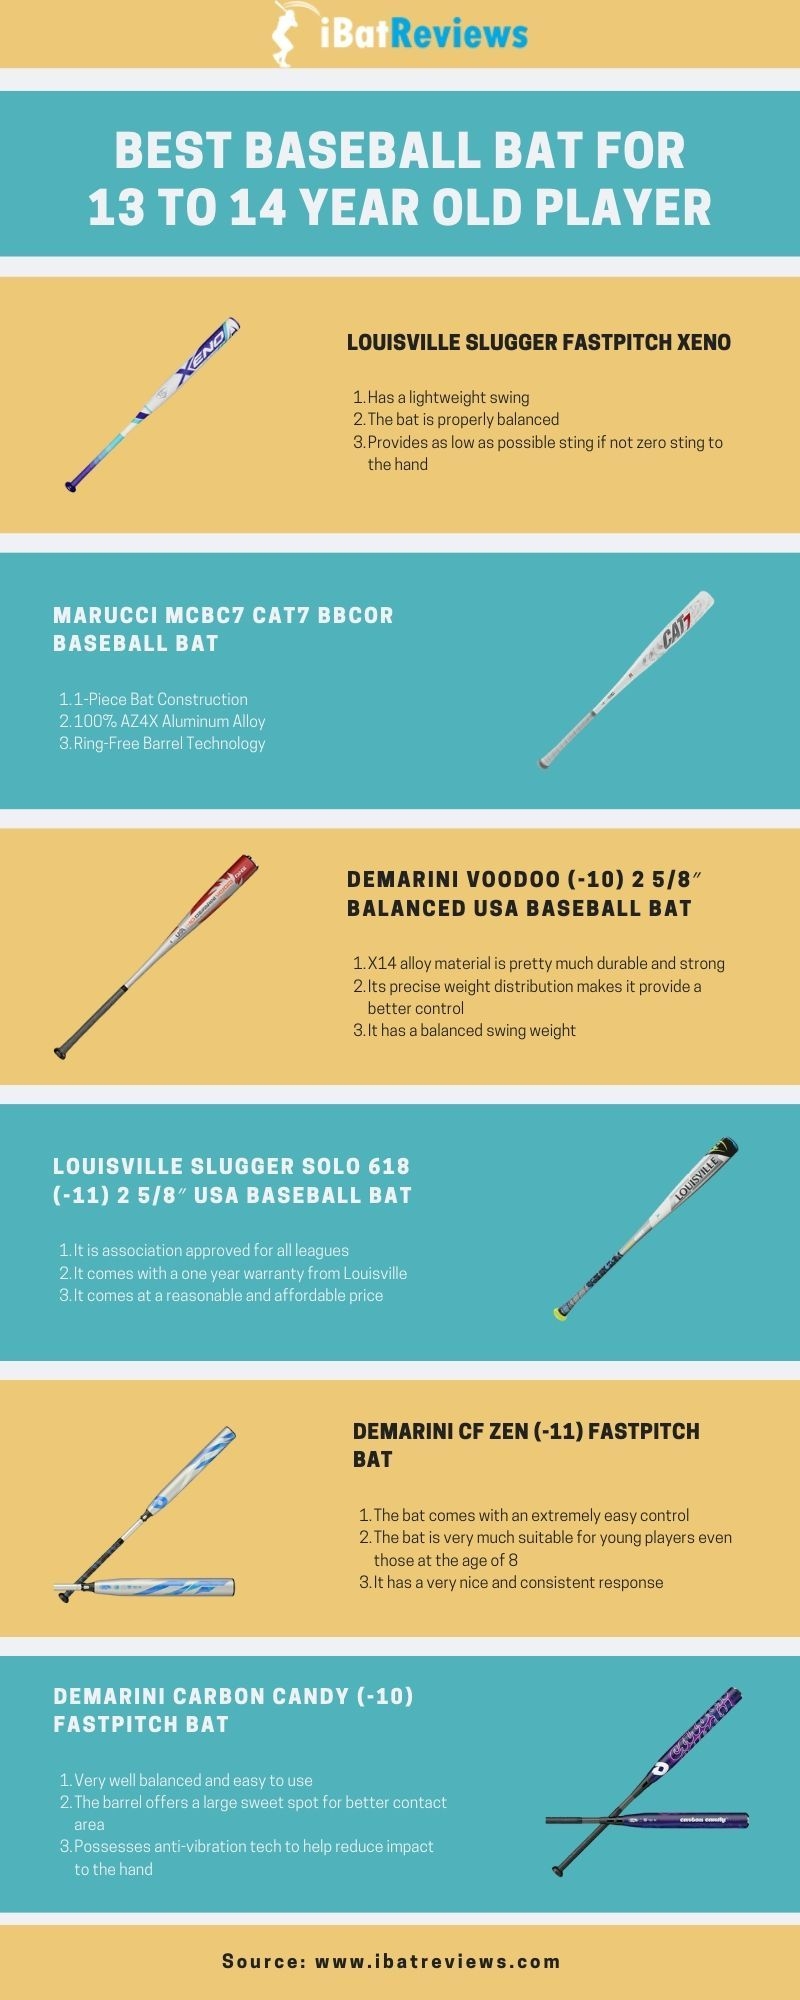 Best Baseball Bat For 13 To 14 Year Old Player In 2020 Baseball Bat Better Baseball 14 Year Old